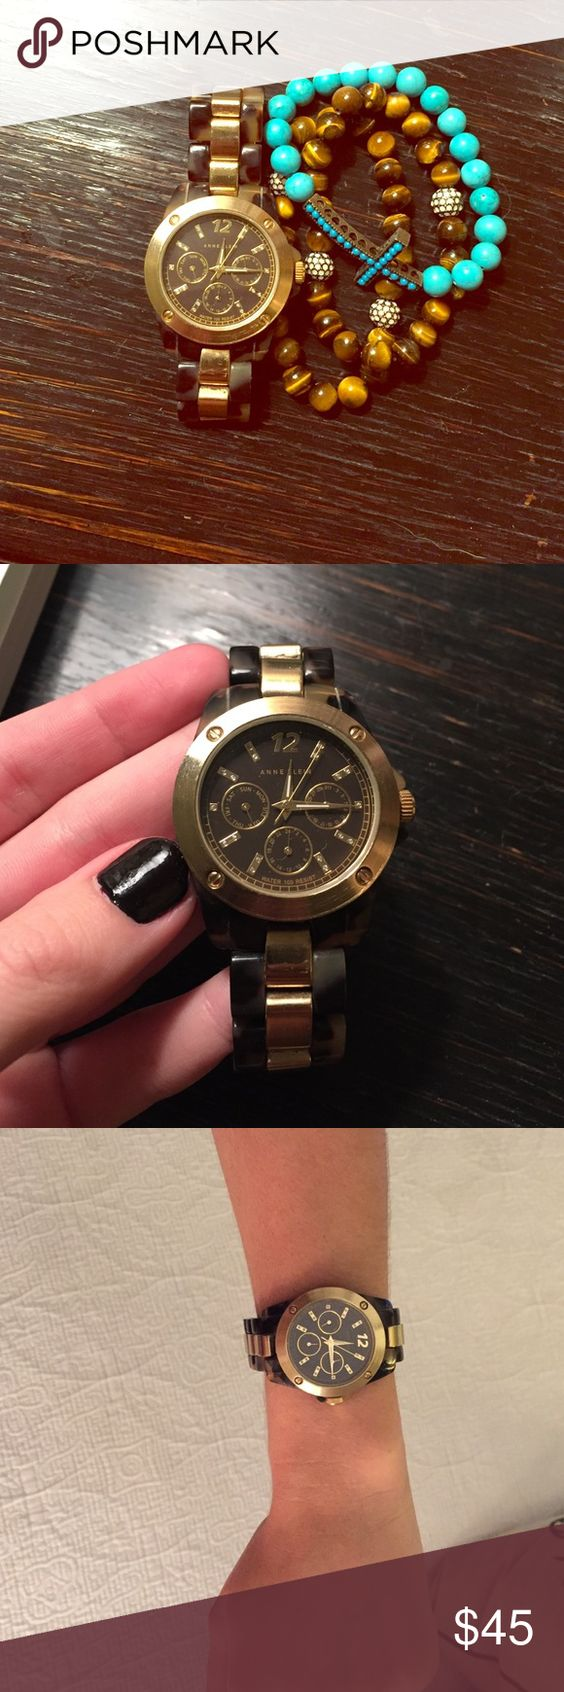 Anne Klein tortoise shell & gold watch This gorgeous Anne Klein watch is the perfect arm candy! Needs new battery, otherwise PERFECT condition. No scratches to the face or the links at all. Anne Klein Accessories Watches